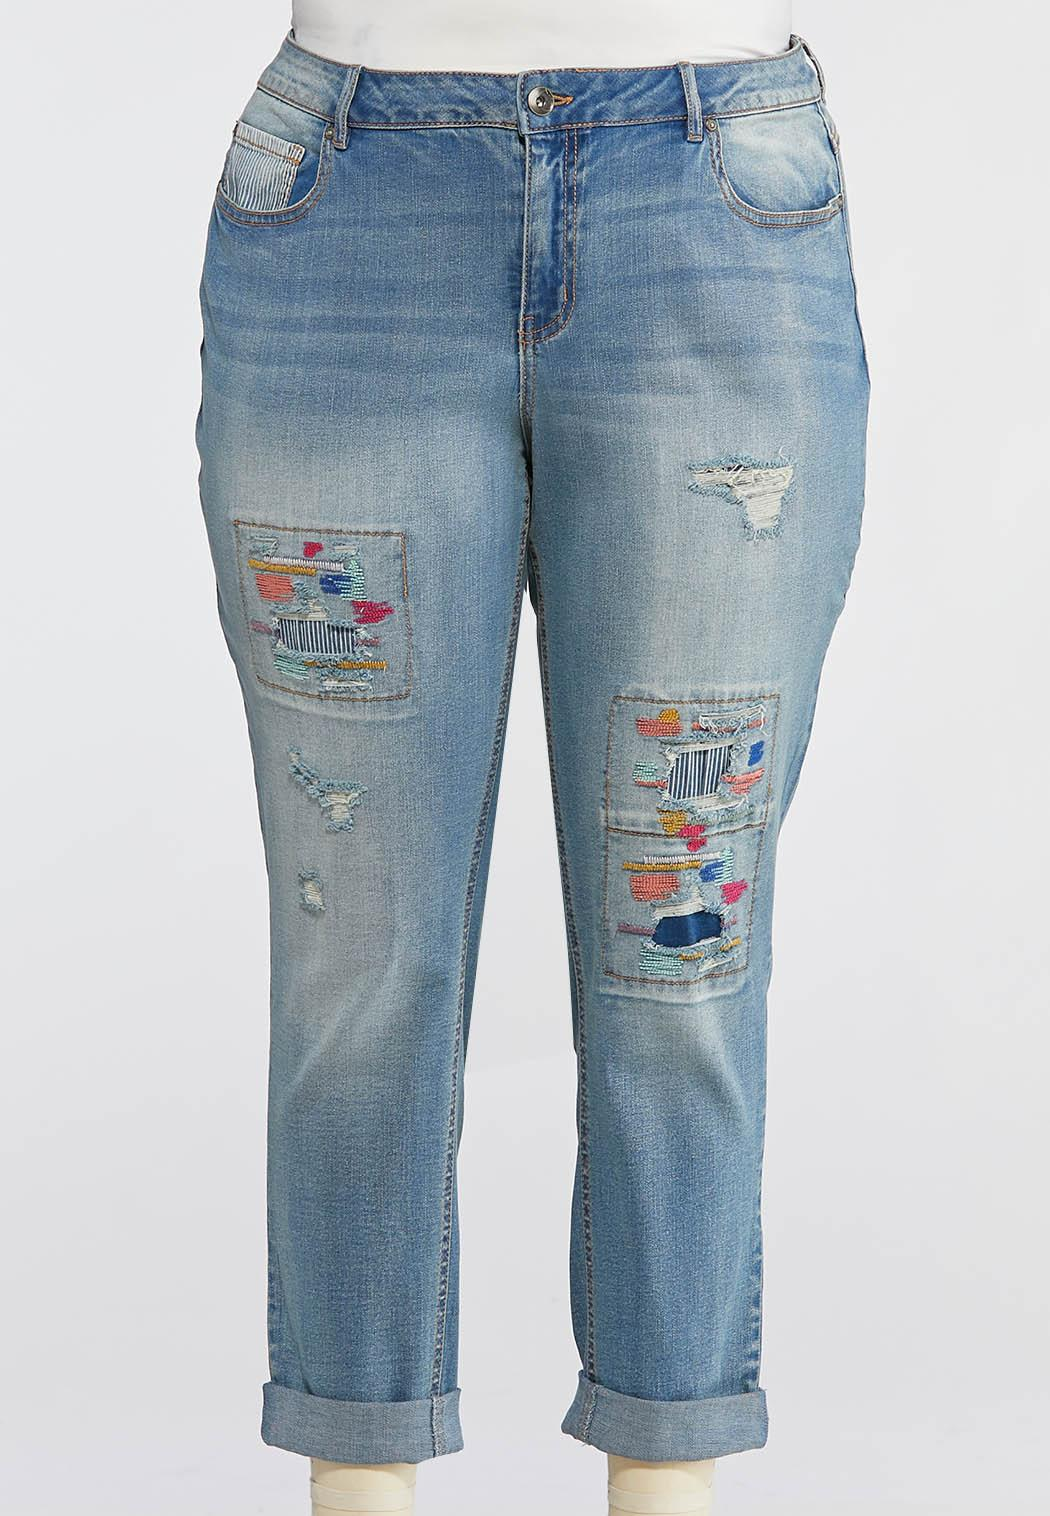 Plus Size Distressed Colorful Stitch Jeans